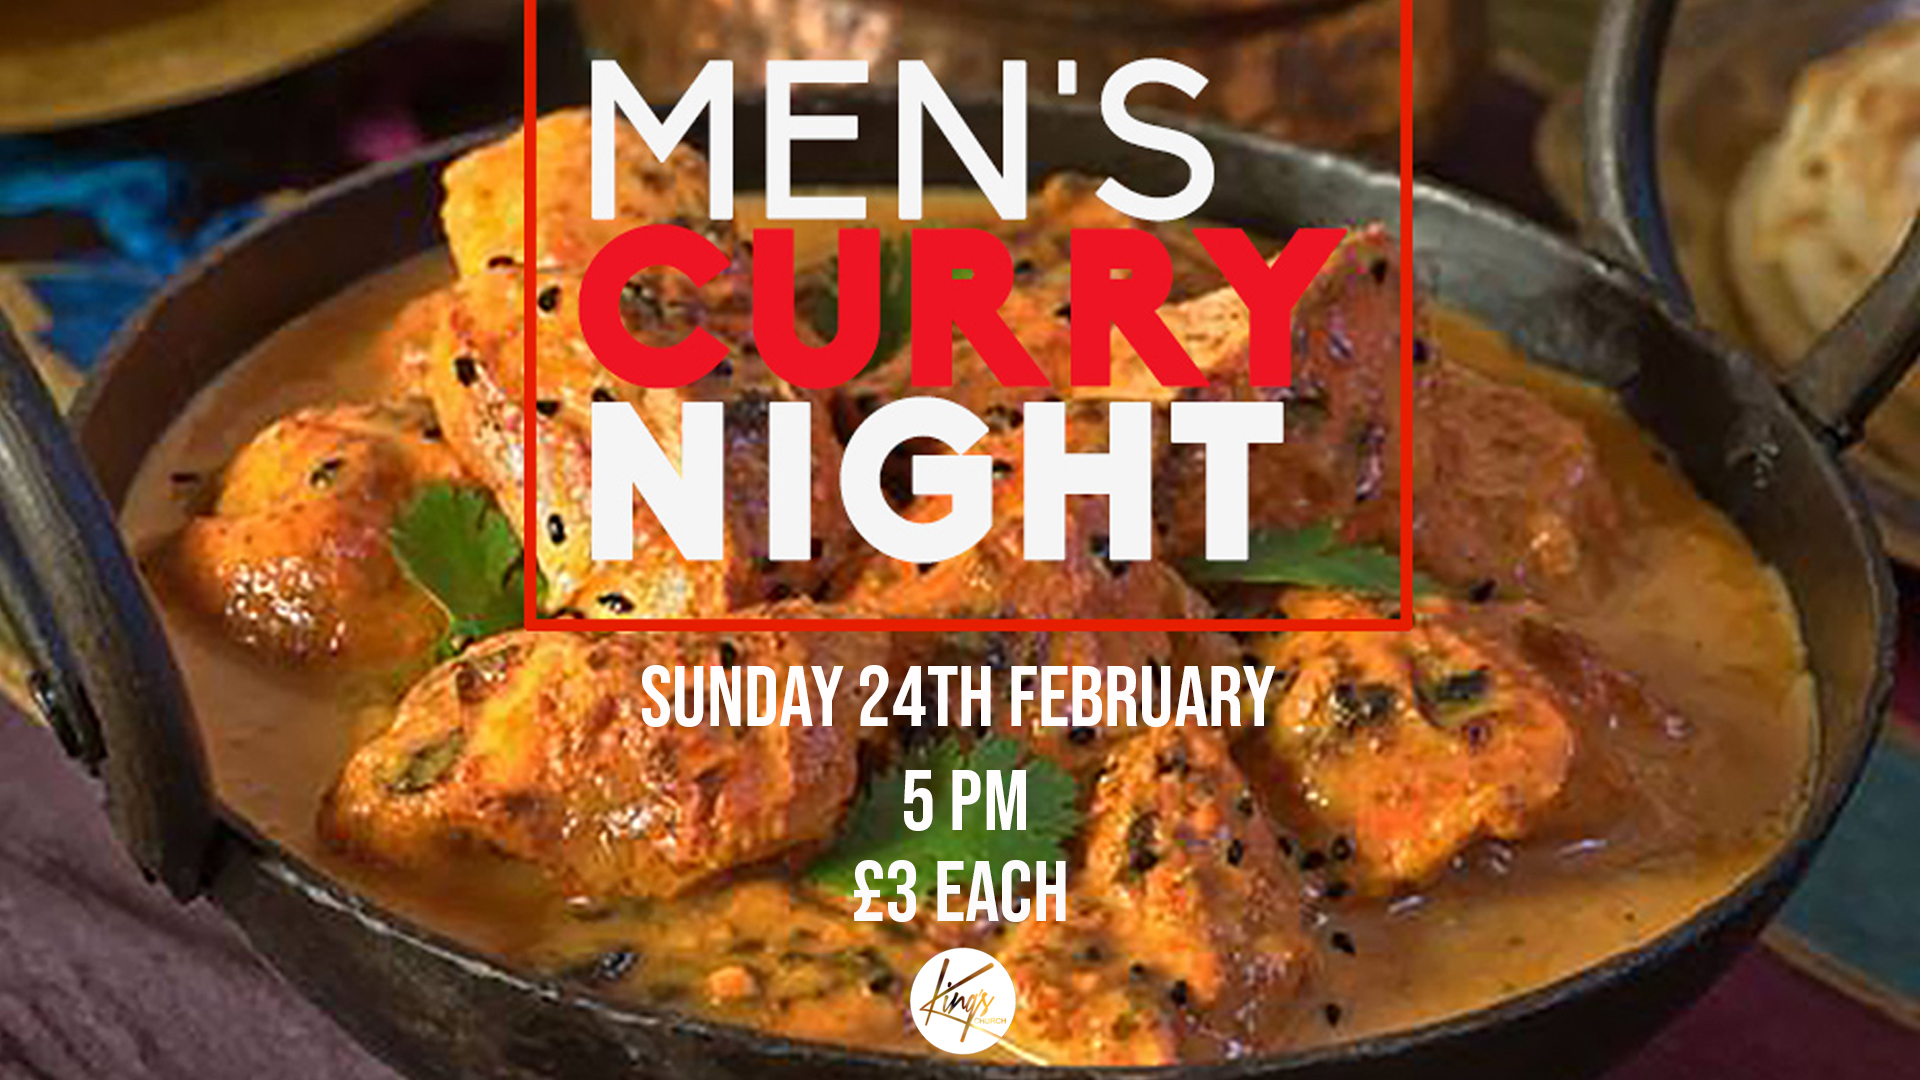 Men's Curry Night